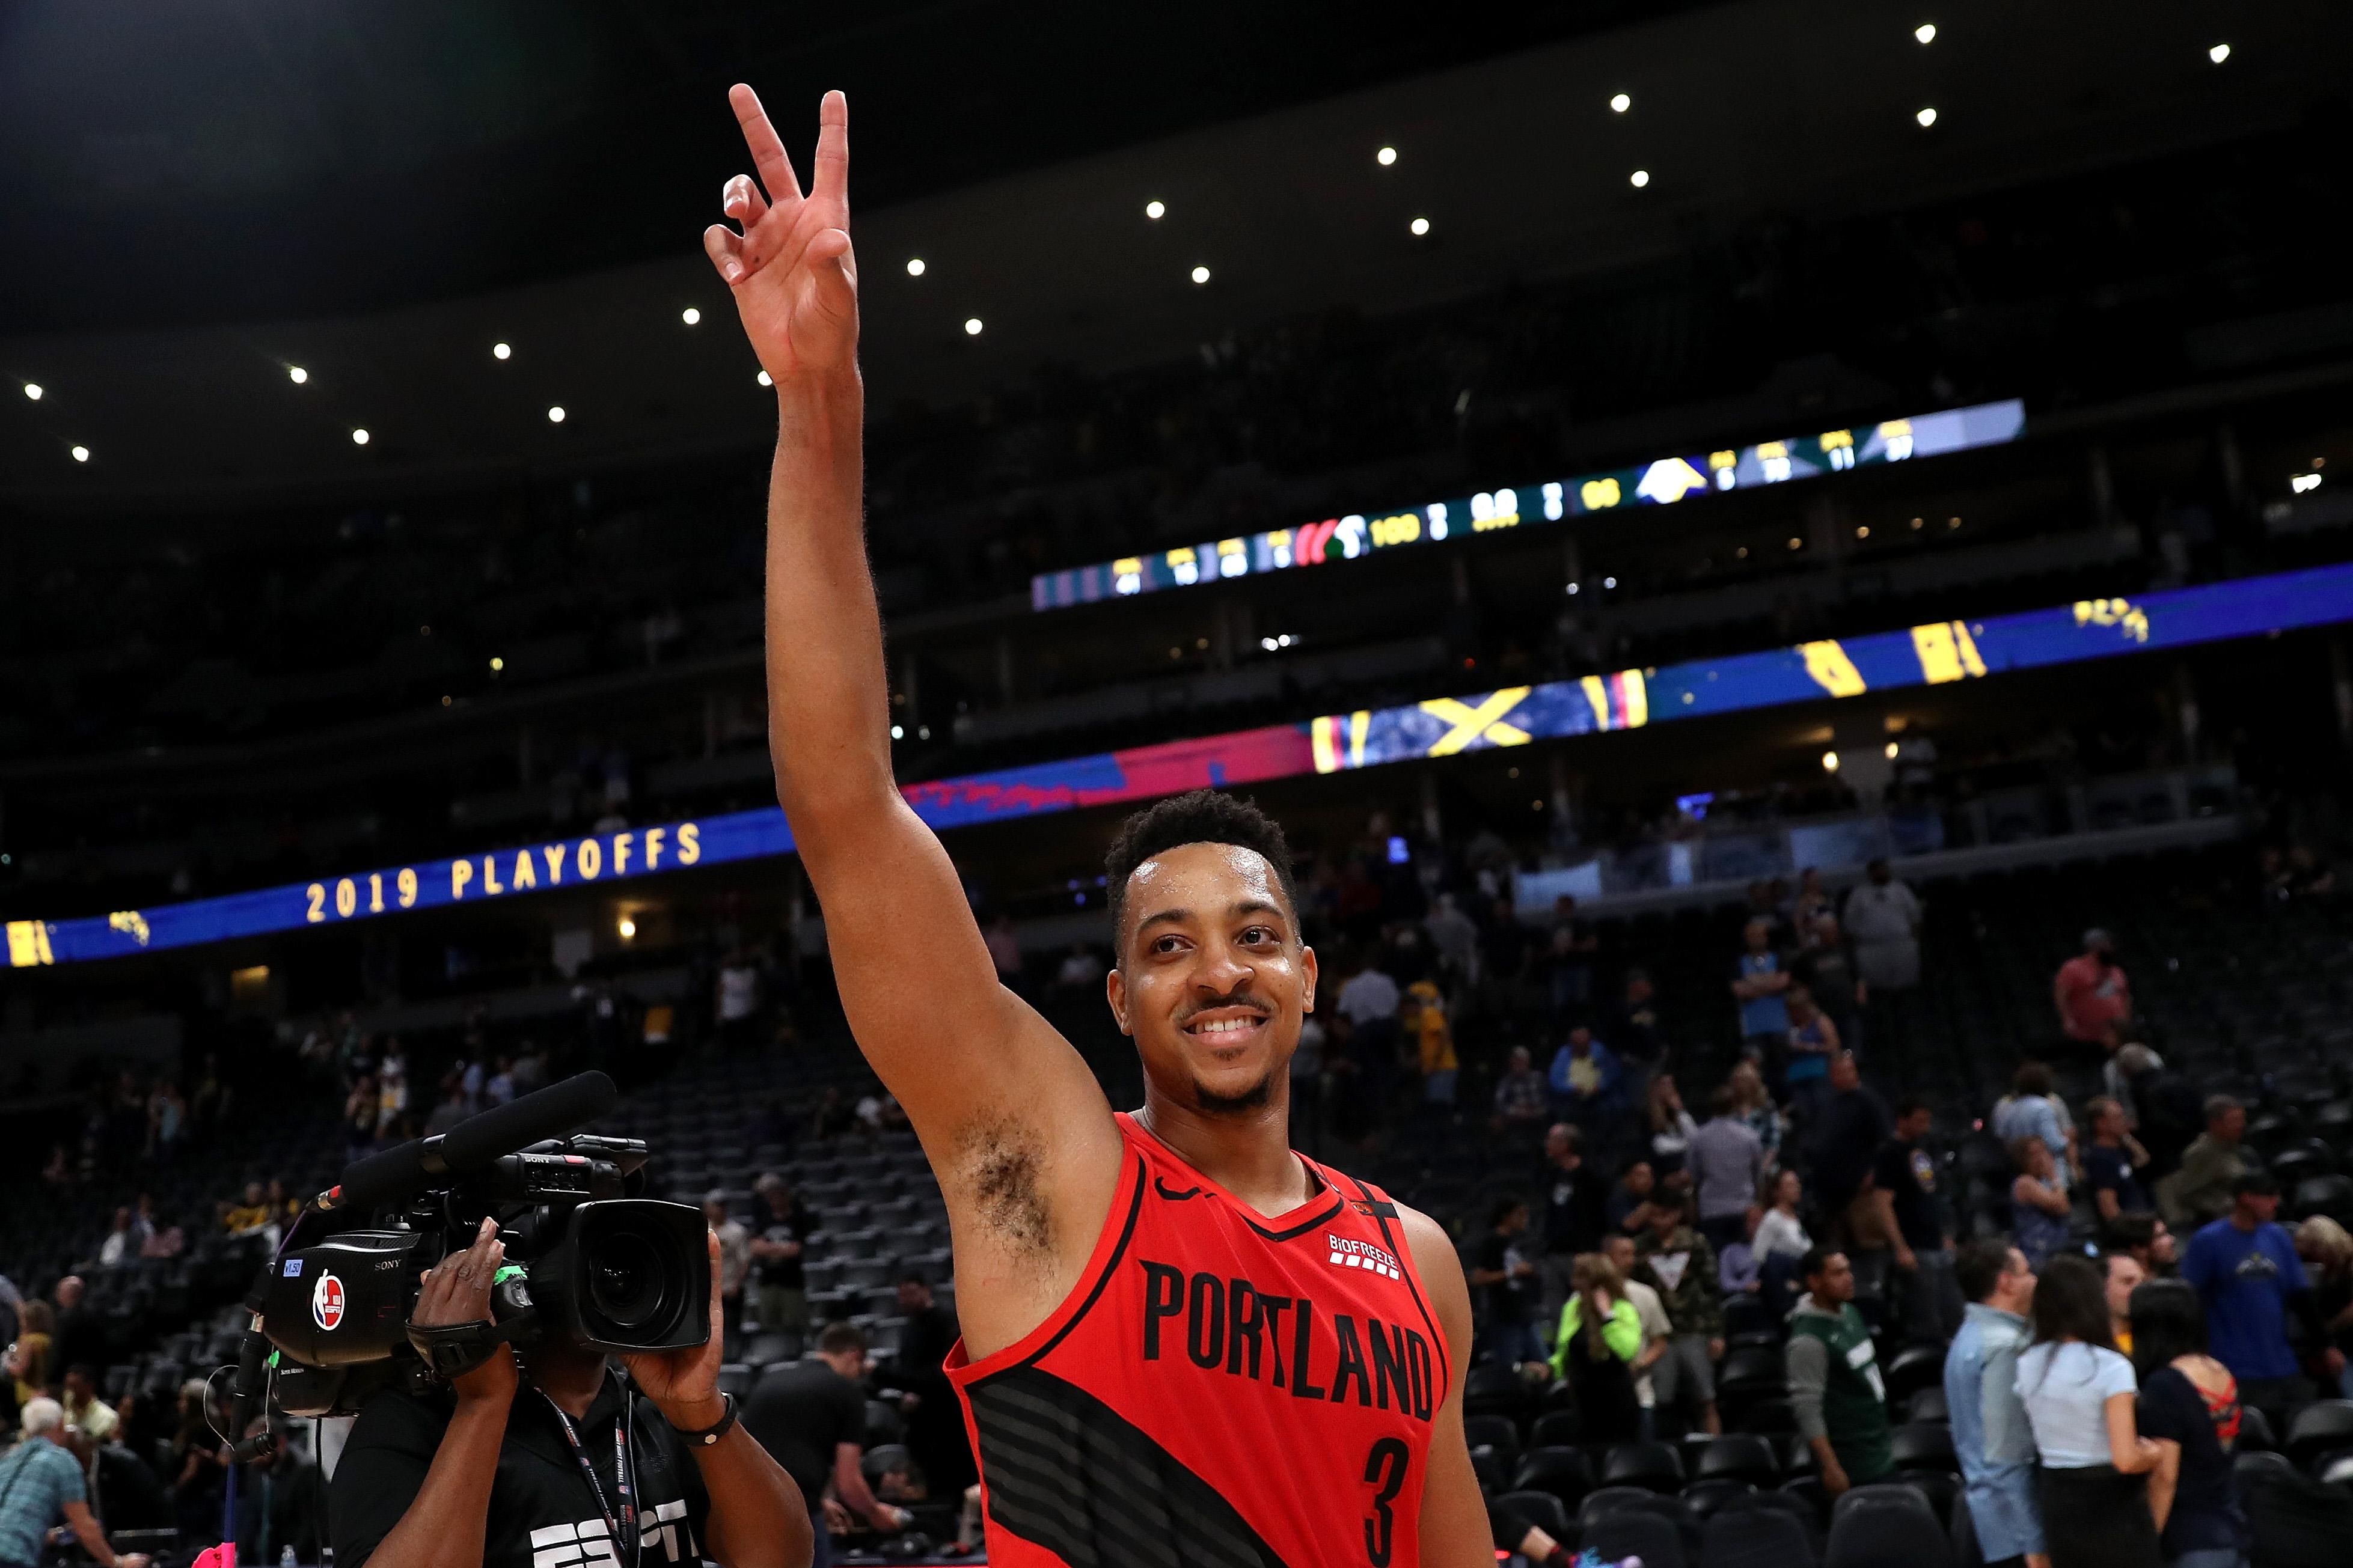 DENVER, COLORADO - MAY 12: CJ McCollum #3 of the Portland Trail Blazers celebrates their win against the Denver Nuggetts during Game Seven of the Western Conference Semi-Finals of the 2019 NBA Playoffs at the Pepsi Center on May 12, 2019 in Denver, Colorado. NOTE TO USER: User expressly acknowledges and agrees that, by downloading and or using this photograph, User is consenting to the terms and conditions of the Getty Images License Agreement. (Photo by Matthew Stockman/Getty Images)